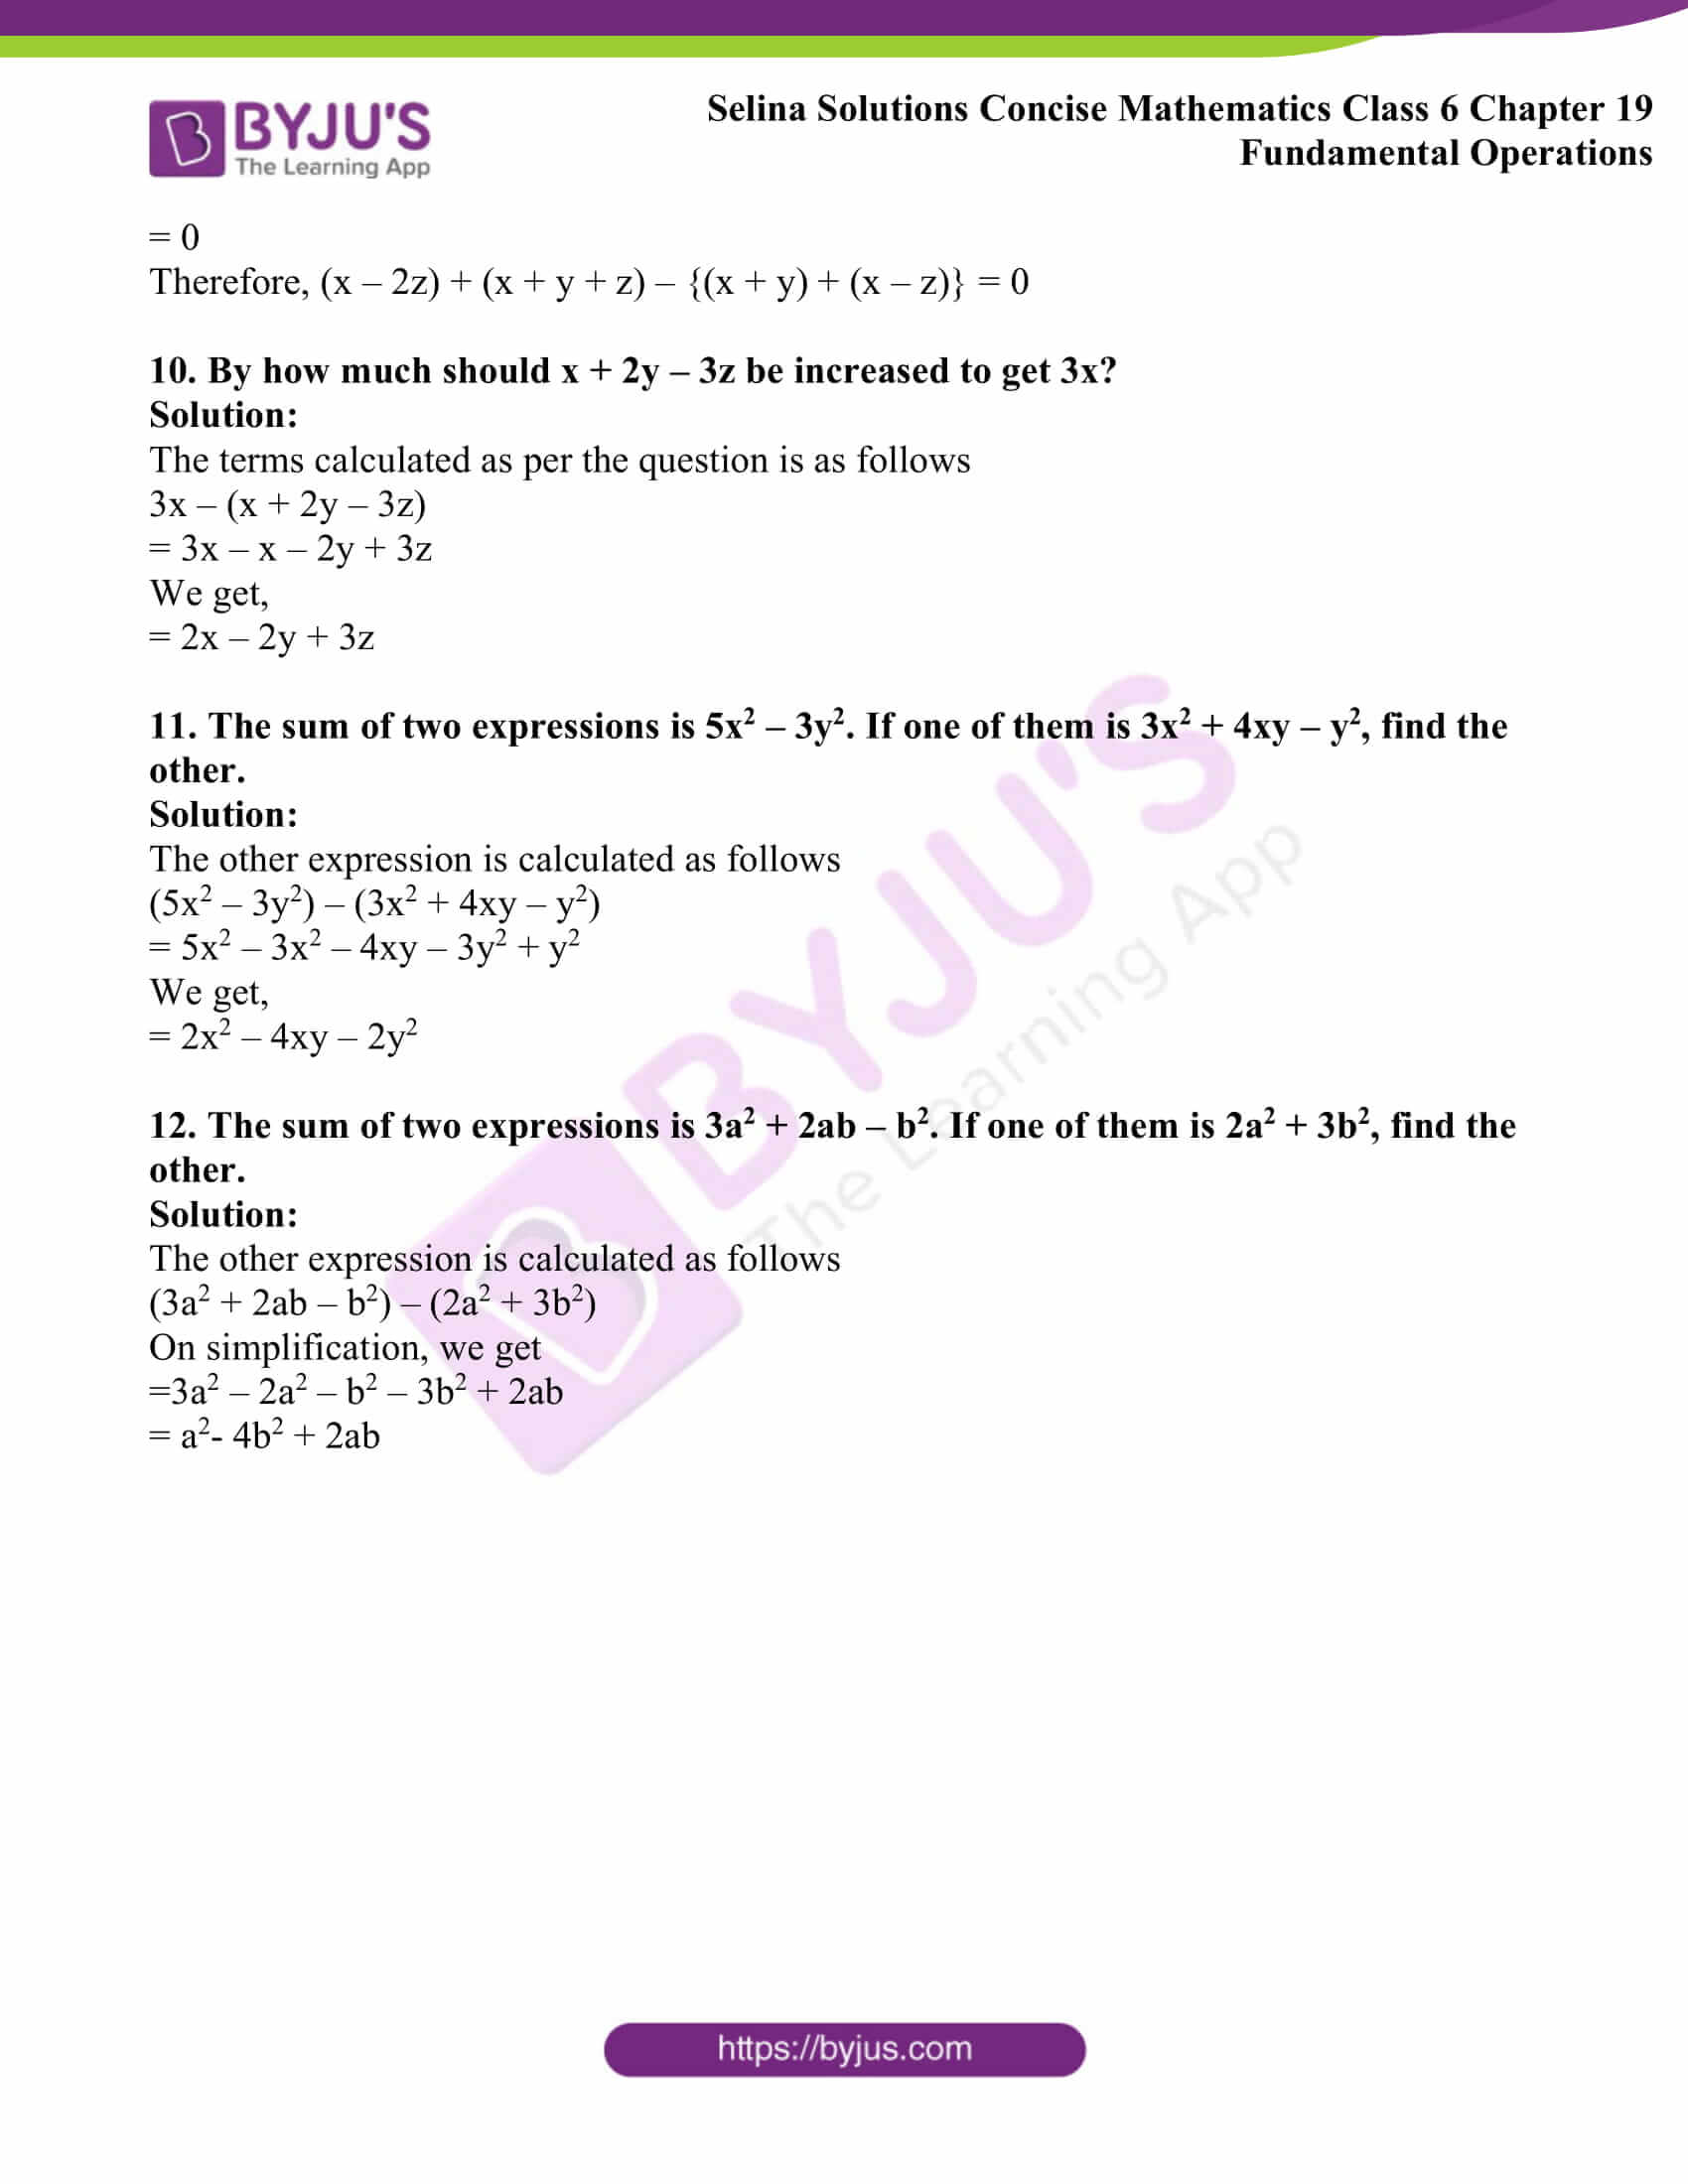 selina solutions concise math class 6 chapter 19 ex b 7